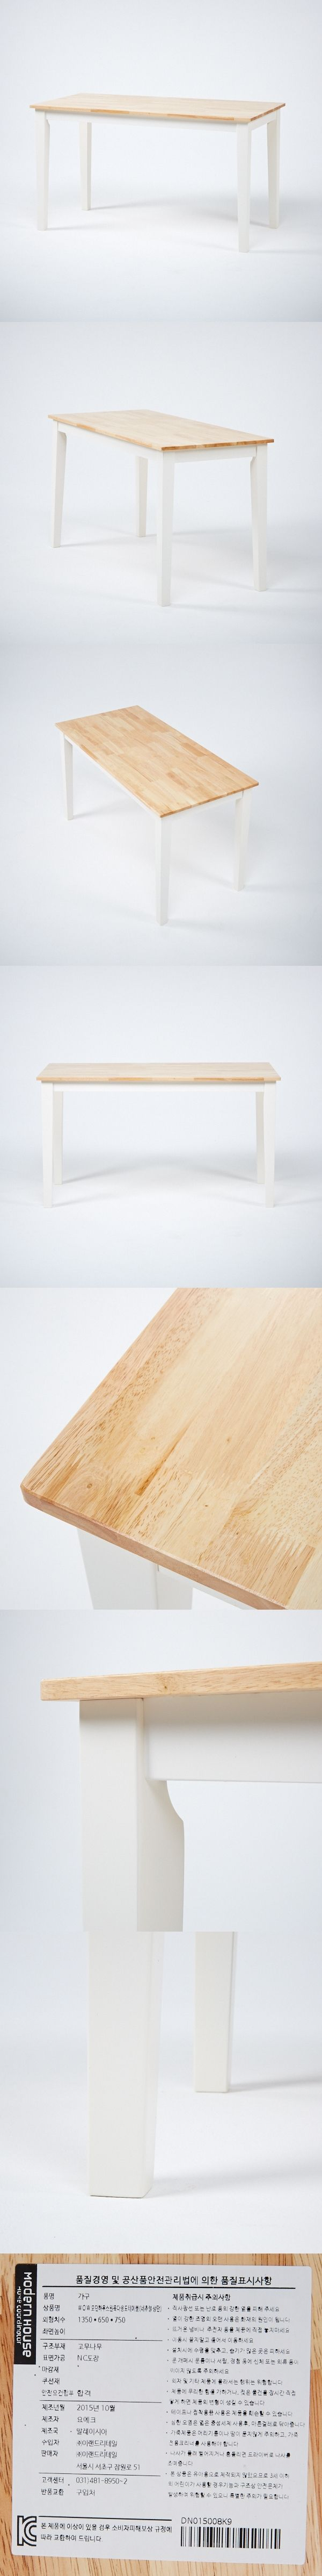 40 best Tisch images on Pinterest | Table, Dining room tables and ...